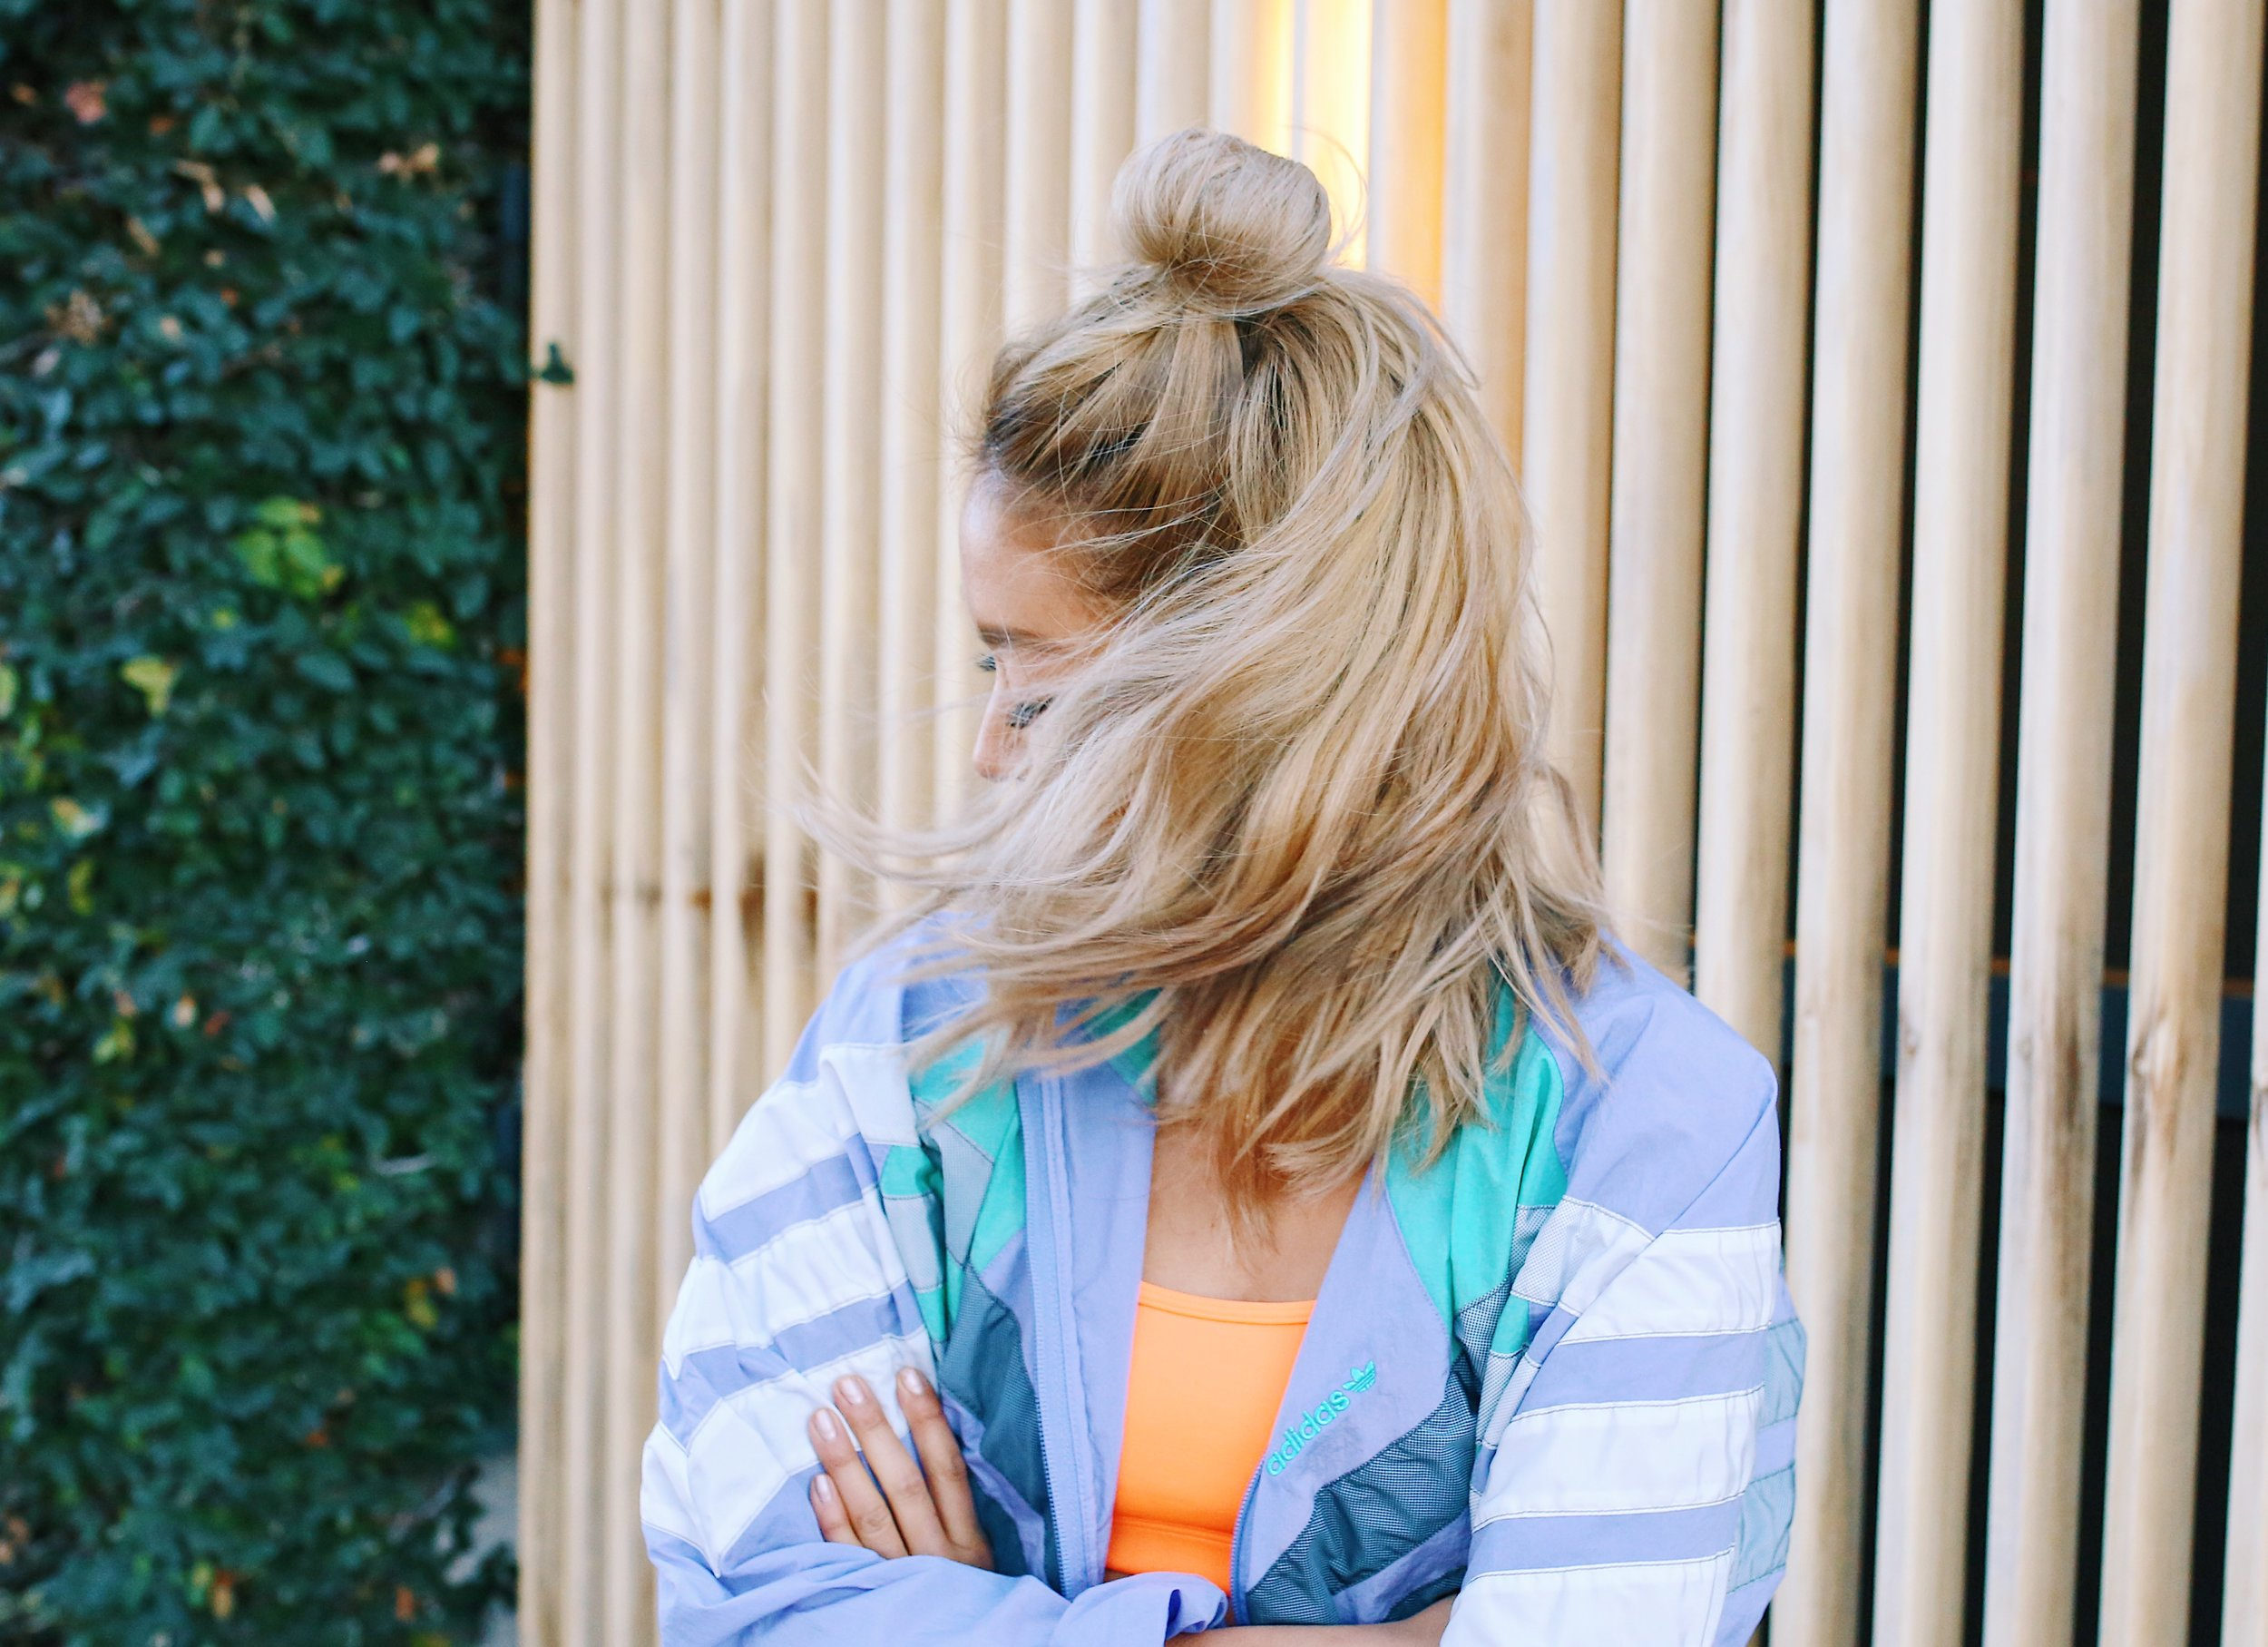 easy-hair-styles-for-the-gym-remi-ishizuka-top-knot.jpg